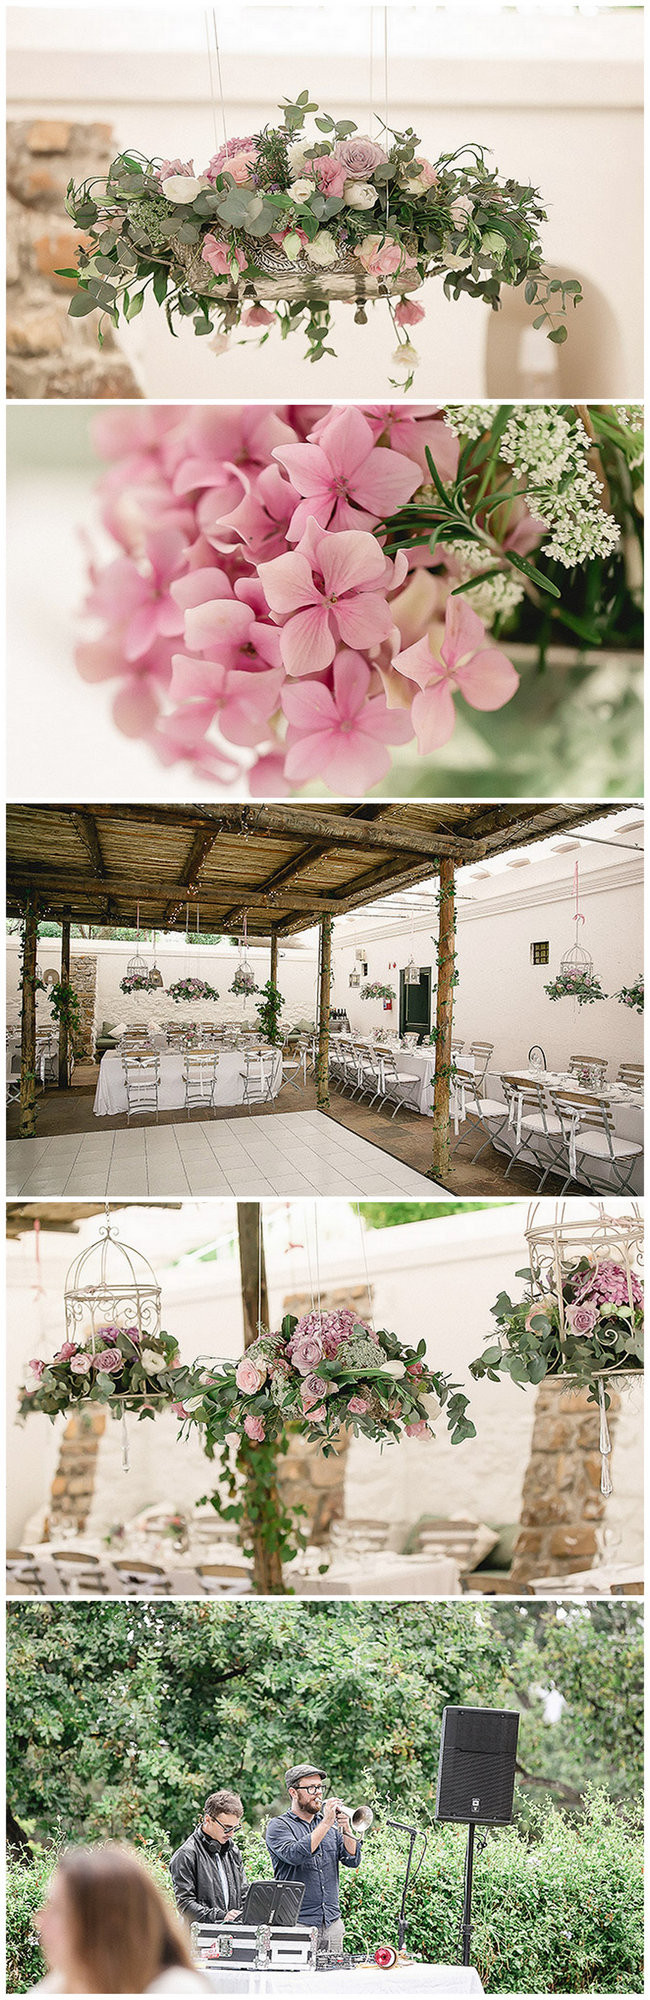 Romantic Courtyard Wedding